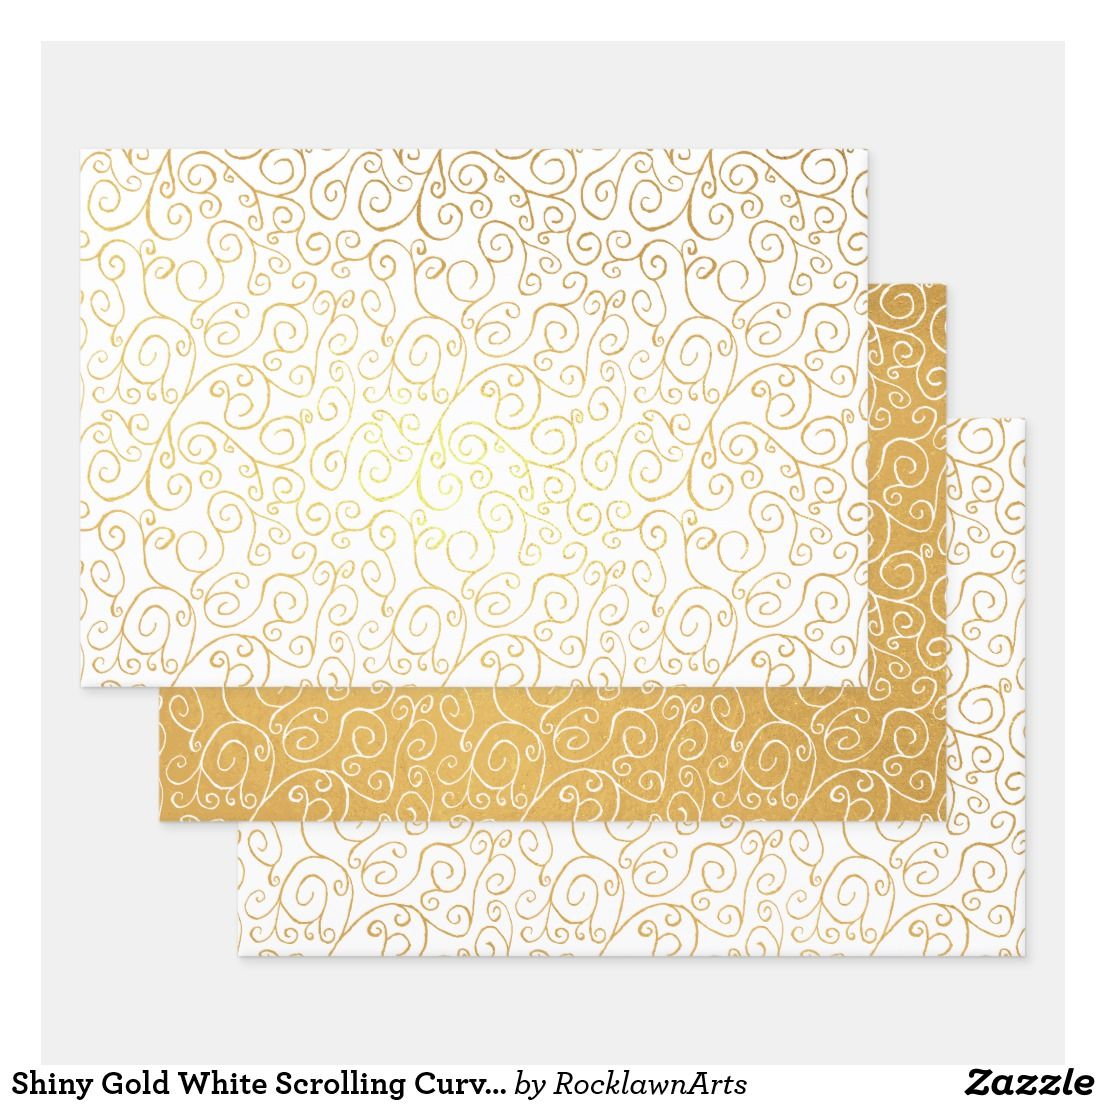 Shiny Gold White Scrolling Curves Abstract Pattern Foil Wrapping Paper Sheets Zazzle Com Wrapping Paper Sheets Gold Foil Background Gift Wrapping Supplies